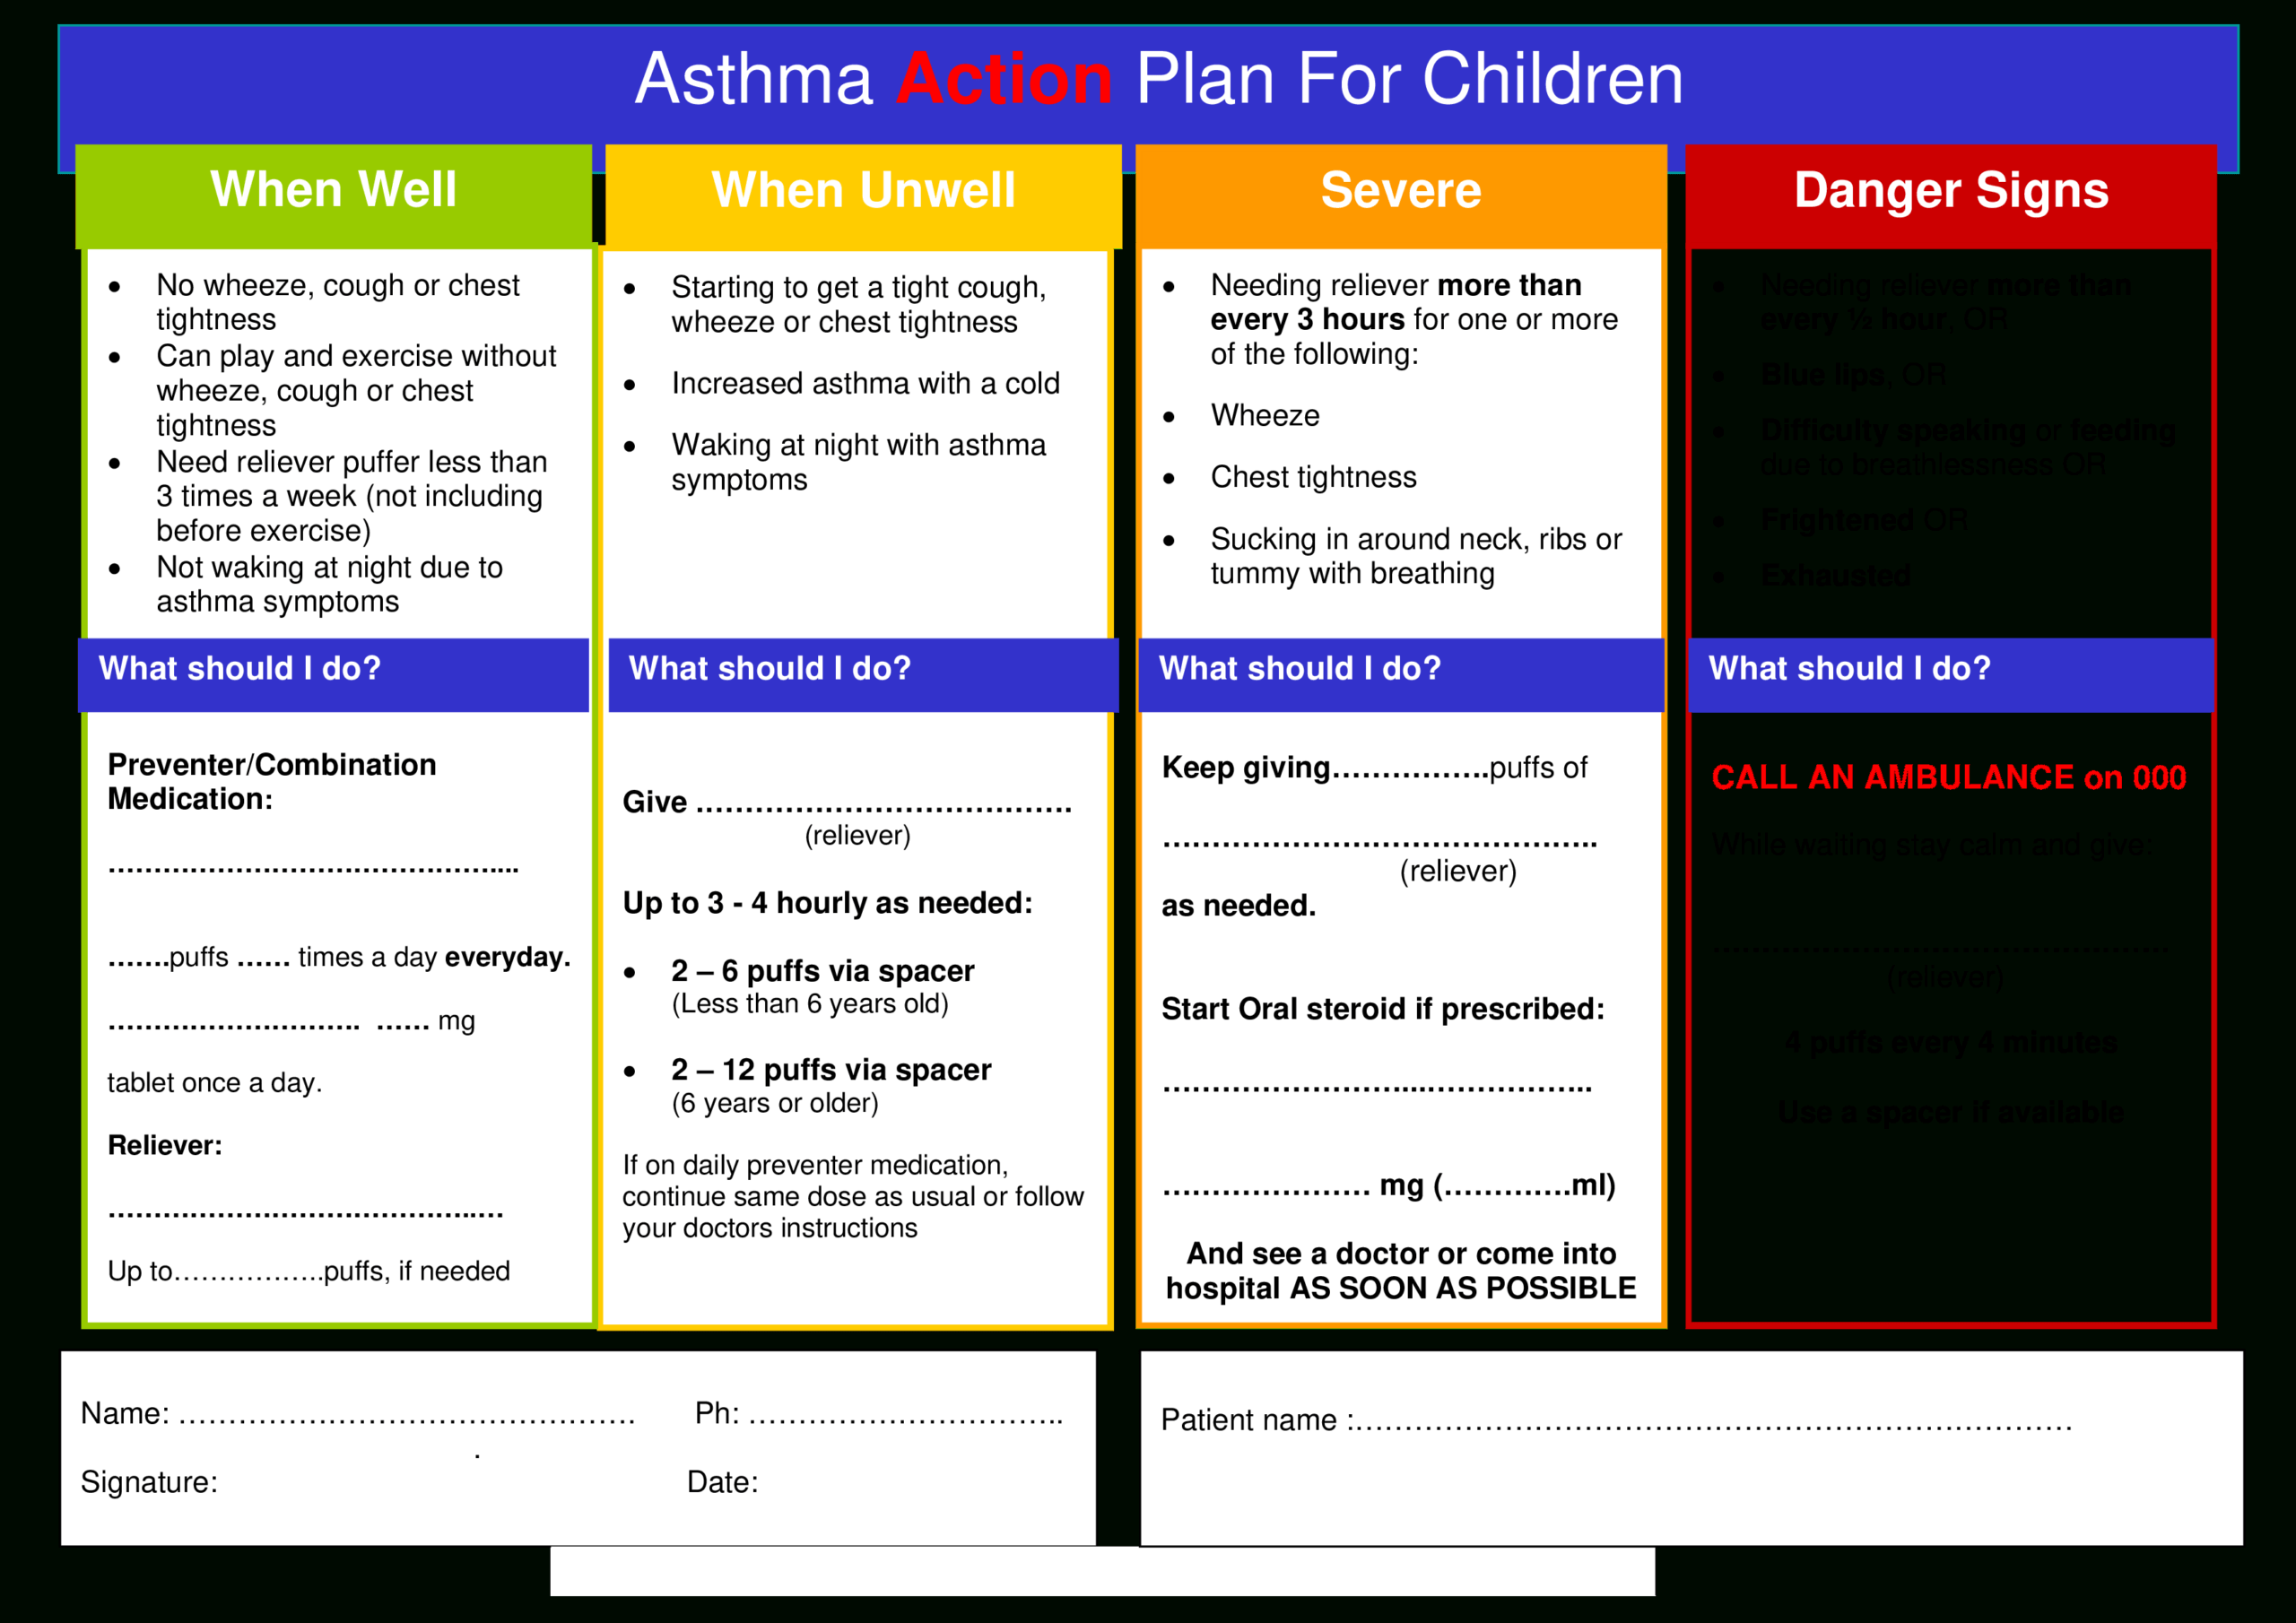 Child Asthma Action Plan | Templates At Allbusinesstemplates With Asthma Action Plan Template